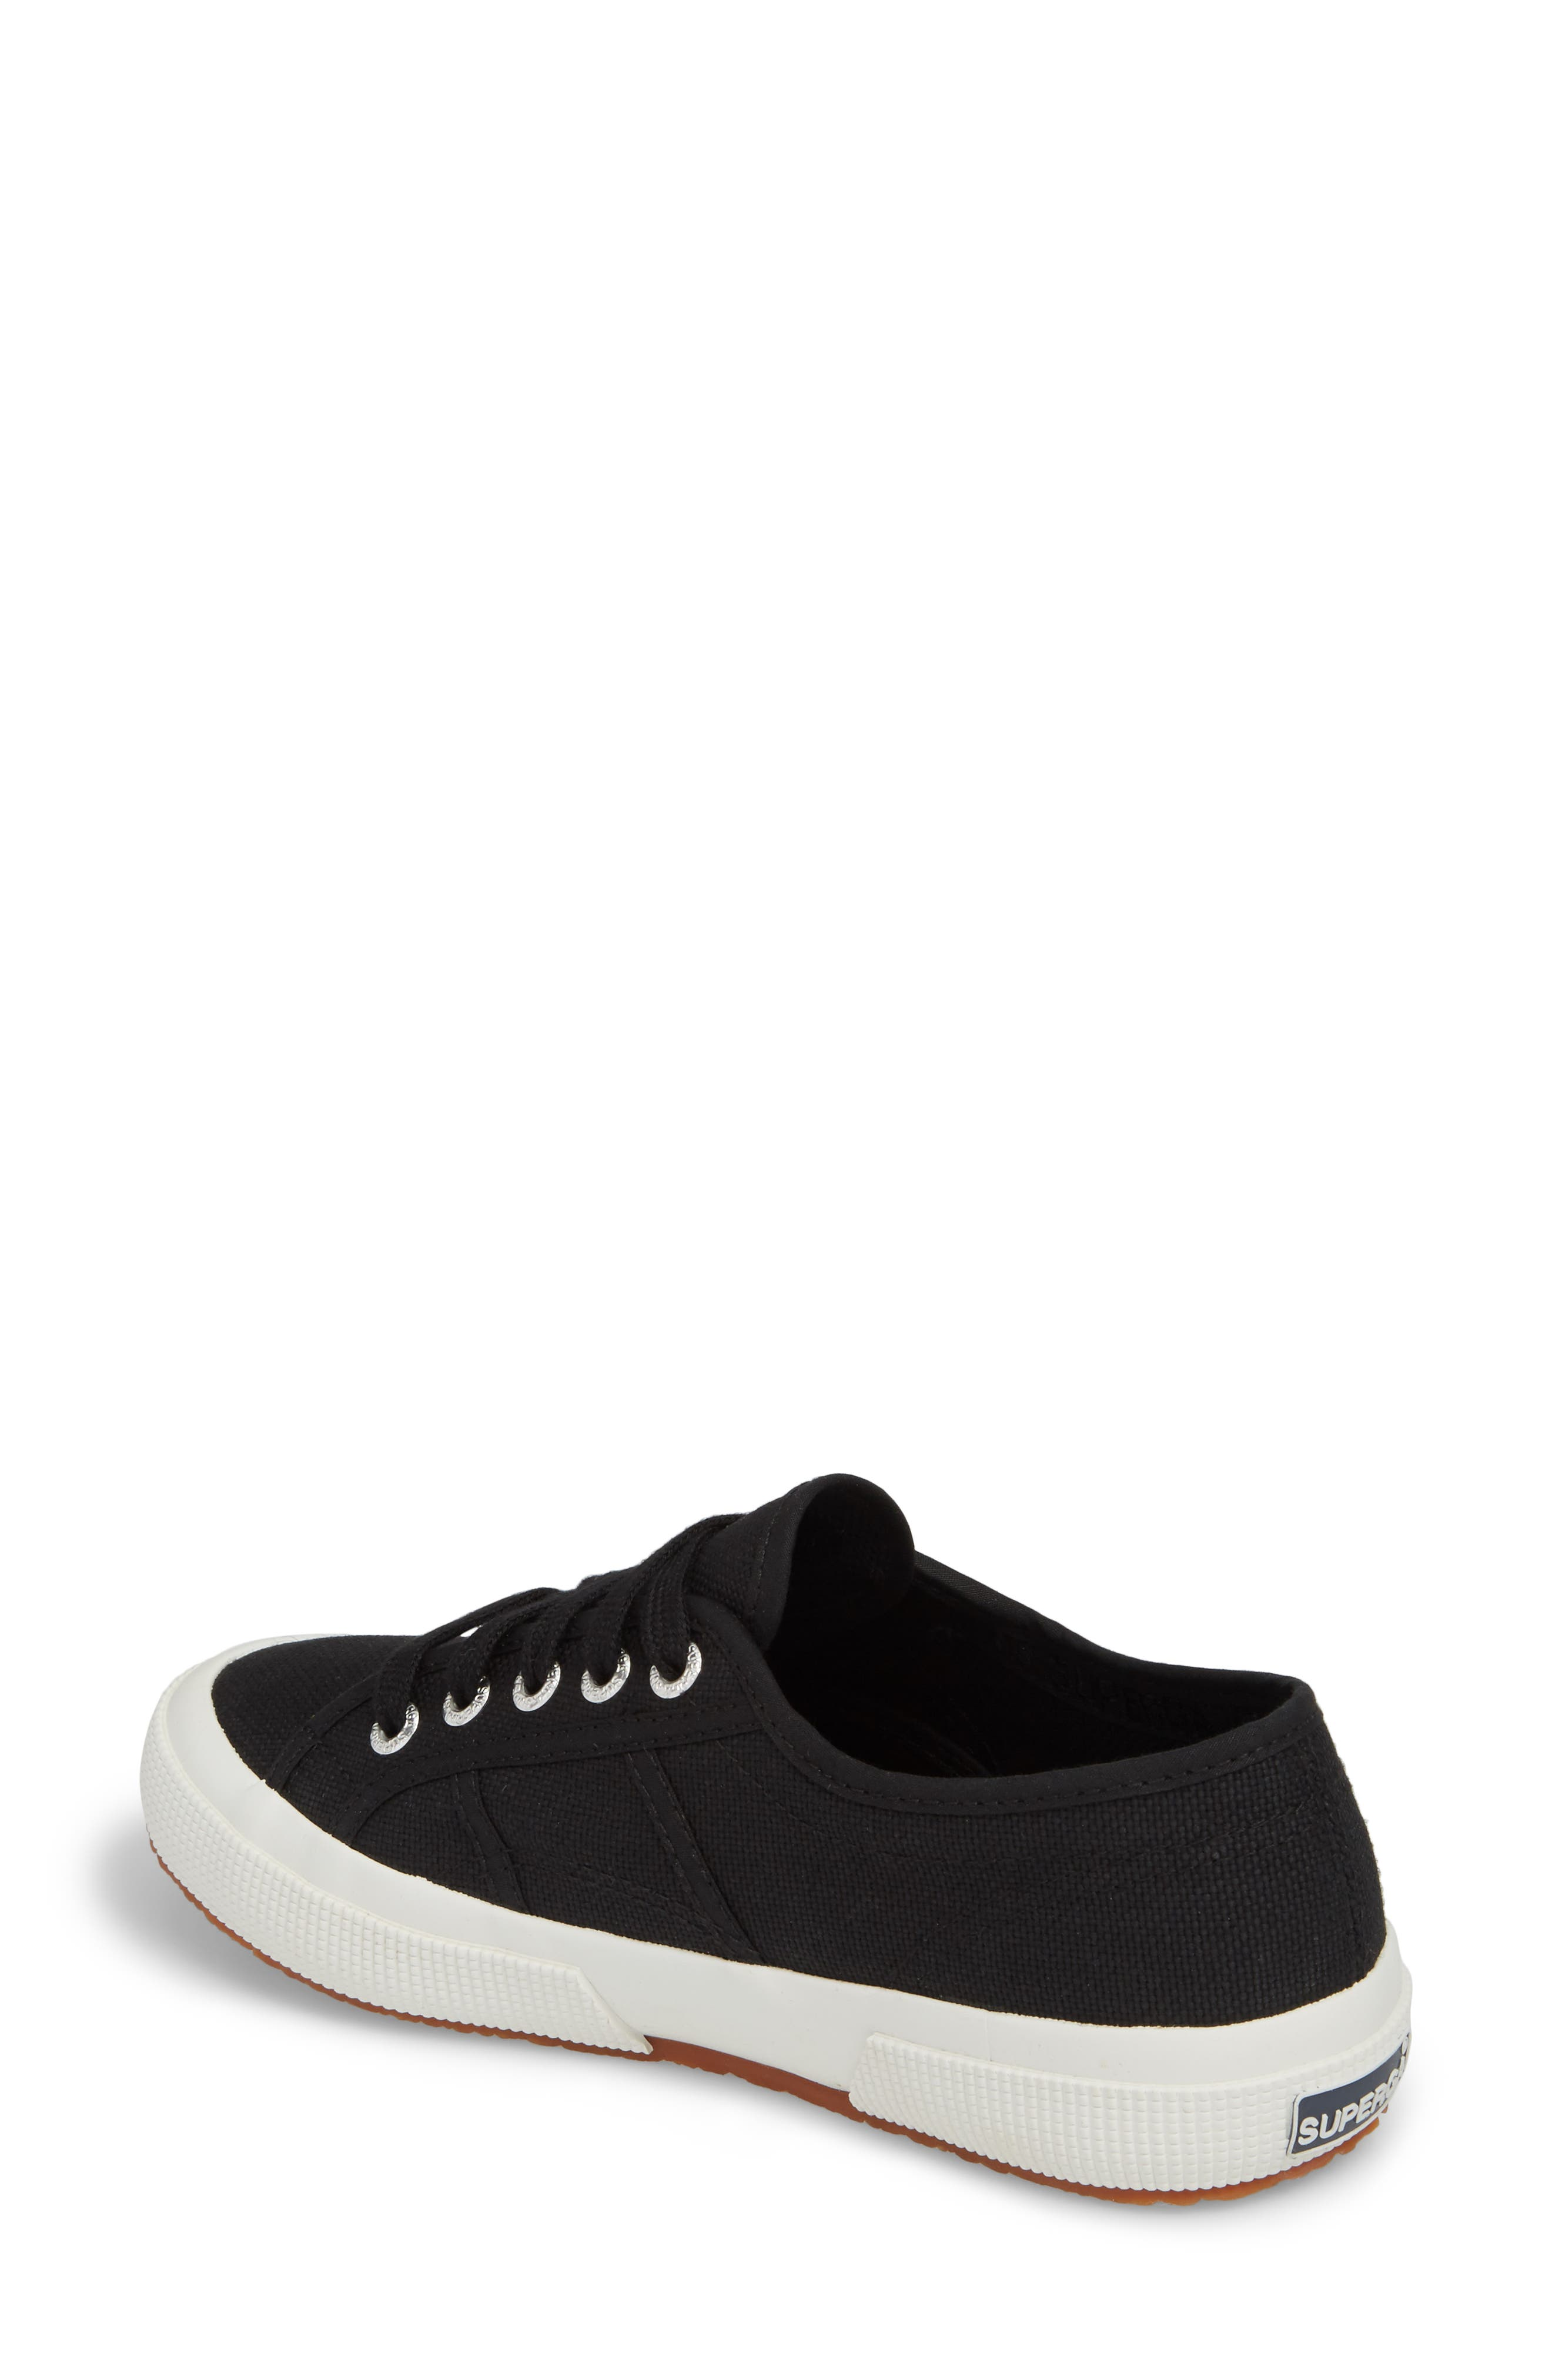 'Cotu' Sneaker,                             Alternate thumbnail 2, color,                             BLACK/ BLACK/ WHITE